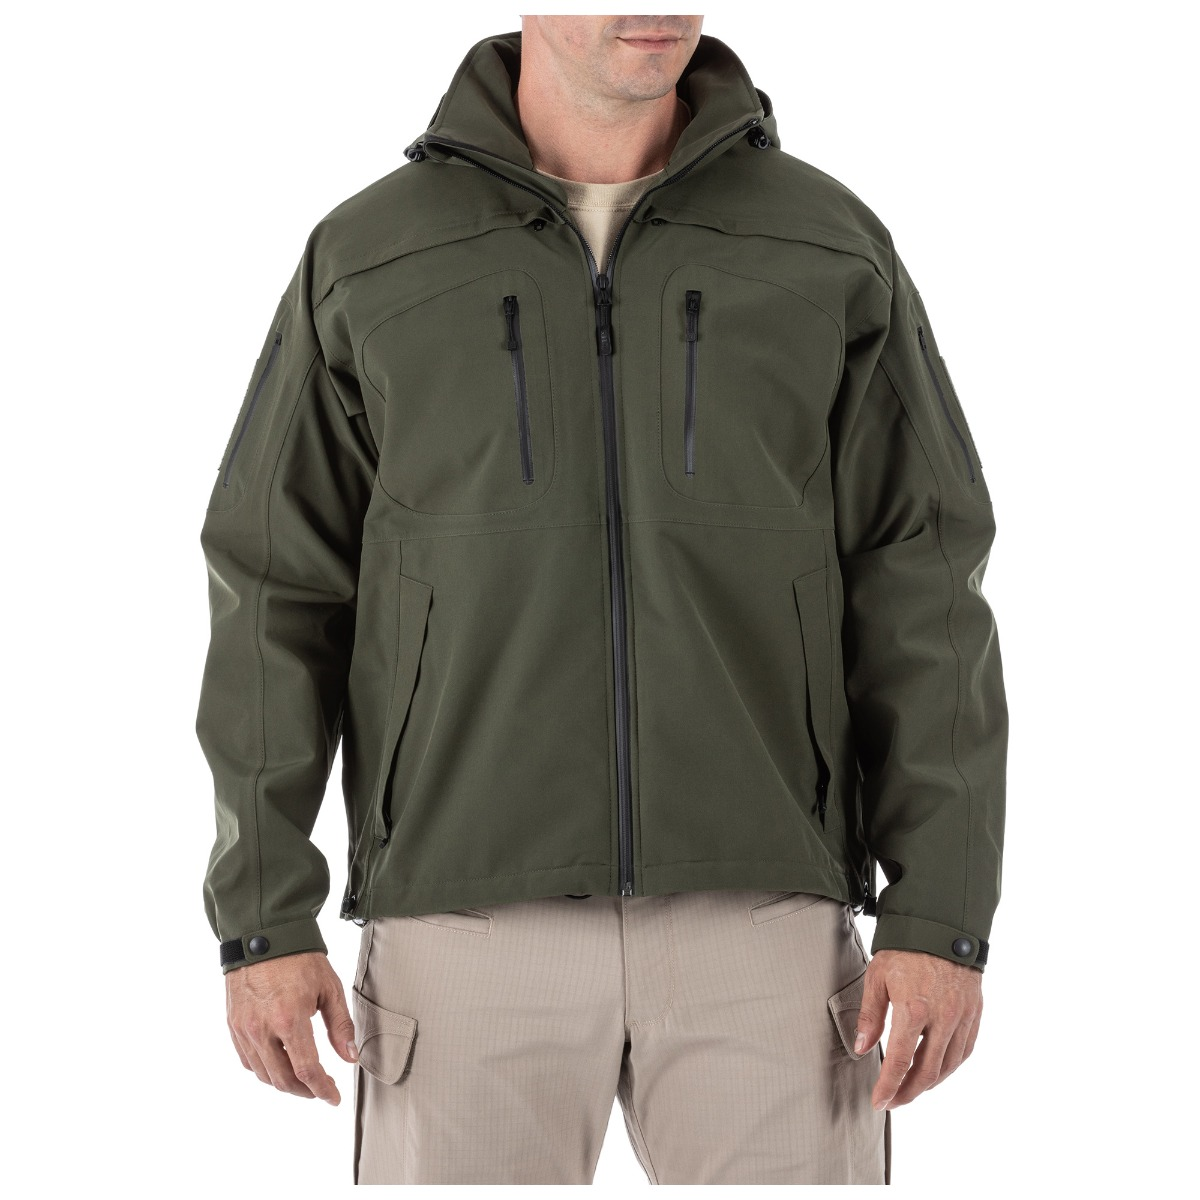 5.11 Tactical Men's Sabre Jacket 2.0™ (Green), Size 2XL (CCW Concealed Carry)